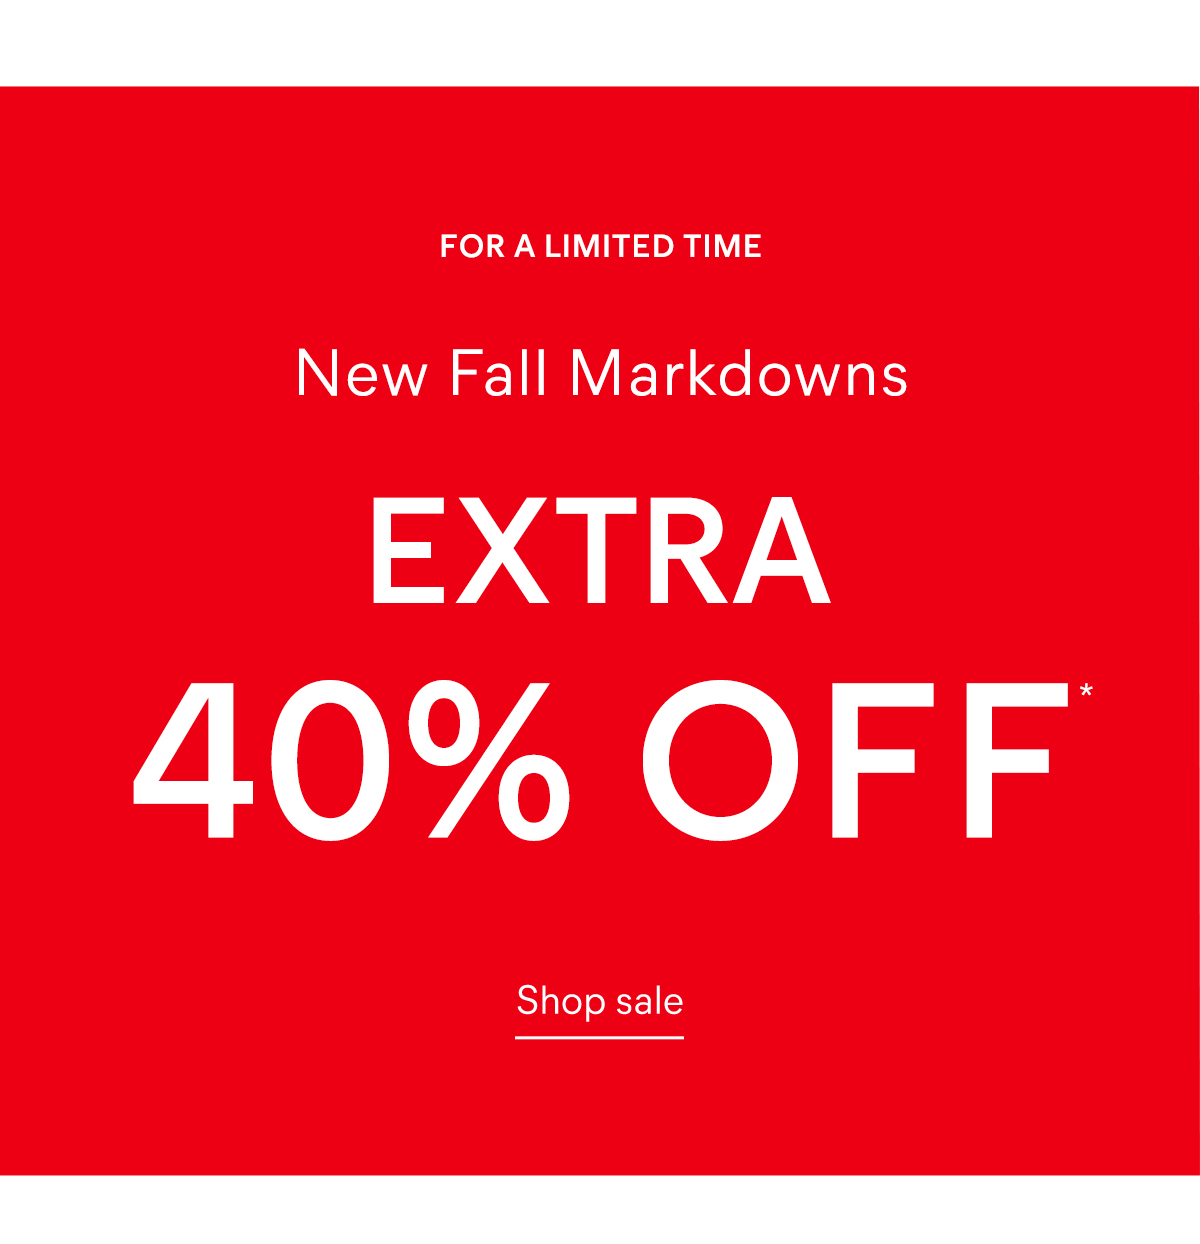 For a limited time  New Fall Markdowns  Now Extra 40% off*  Shop sale